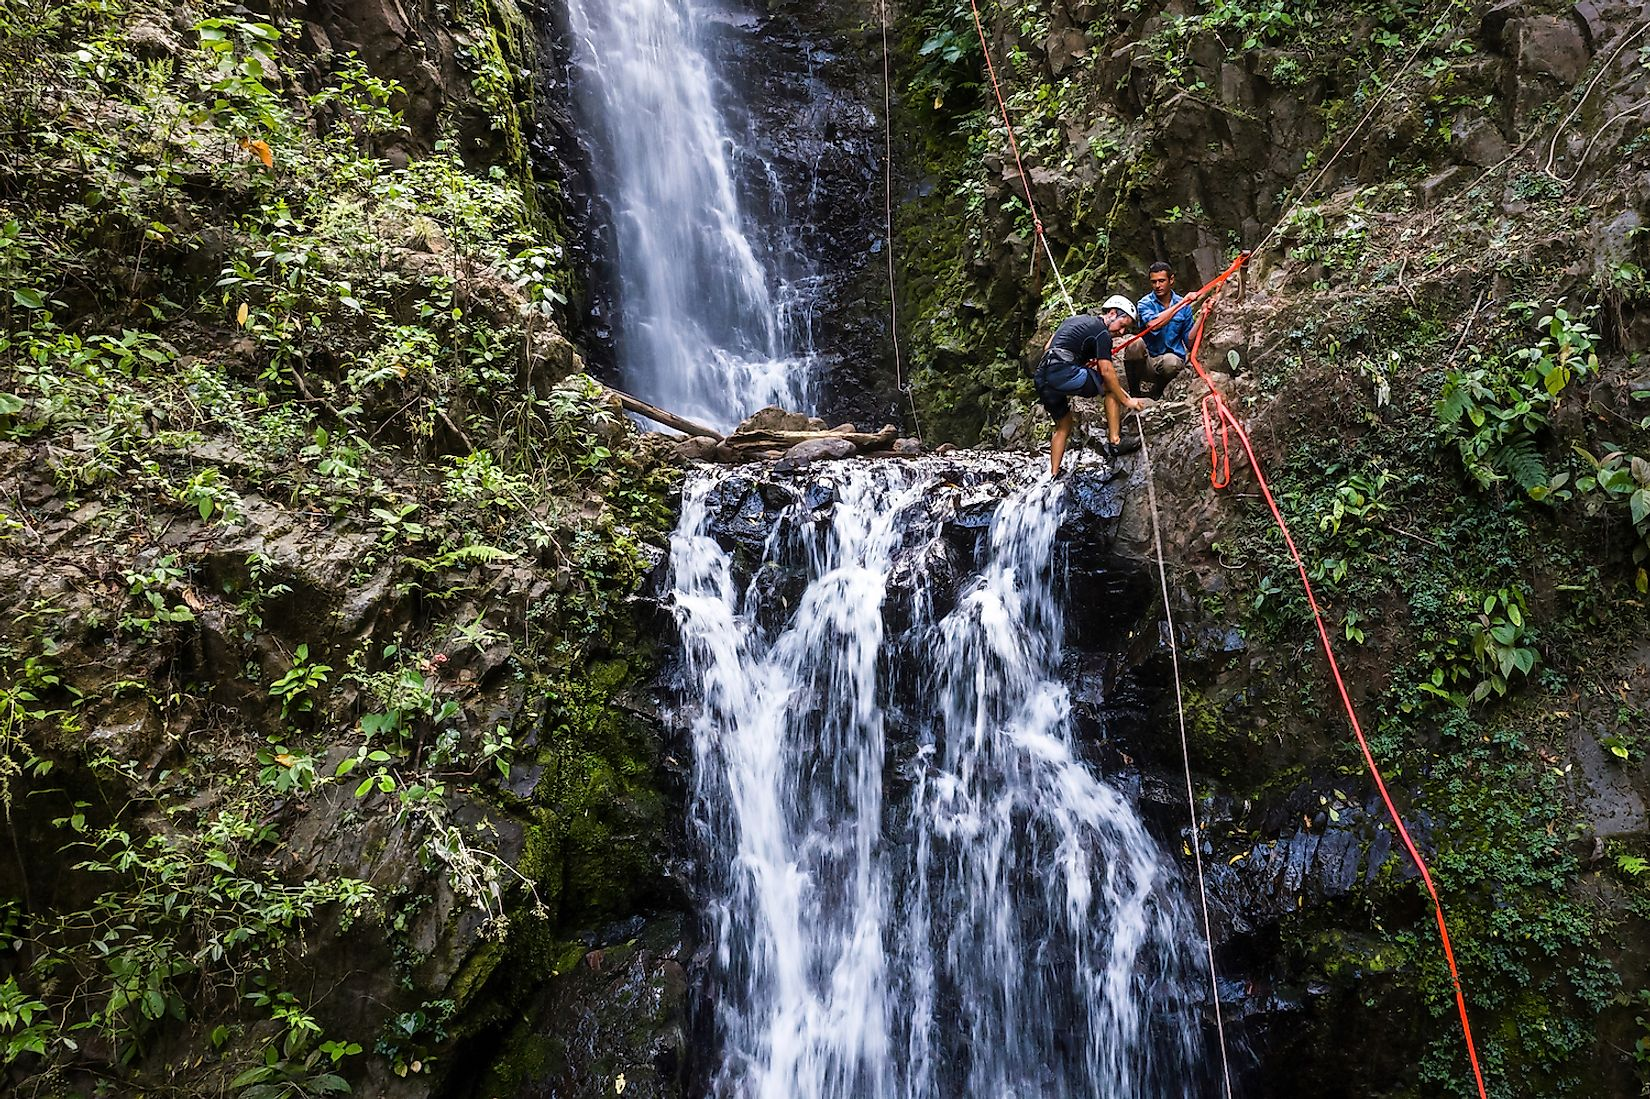 Adventure tourism in tropical Costa Rica while rappelling down a beautiful waterfall deep in the southern mountains of the country. Image credit: Wollertz/Shutterstock.com